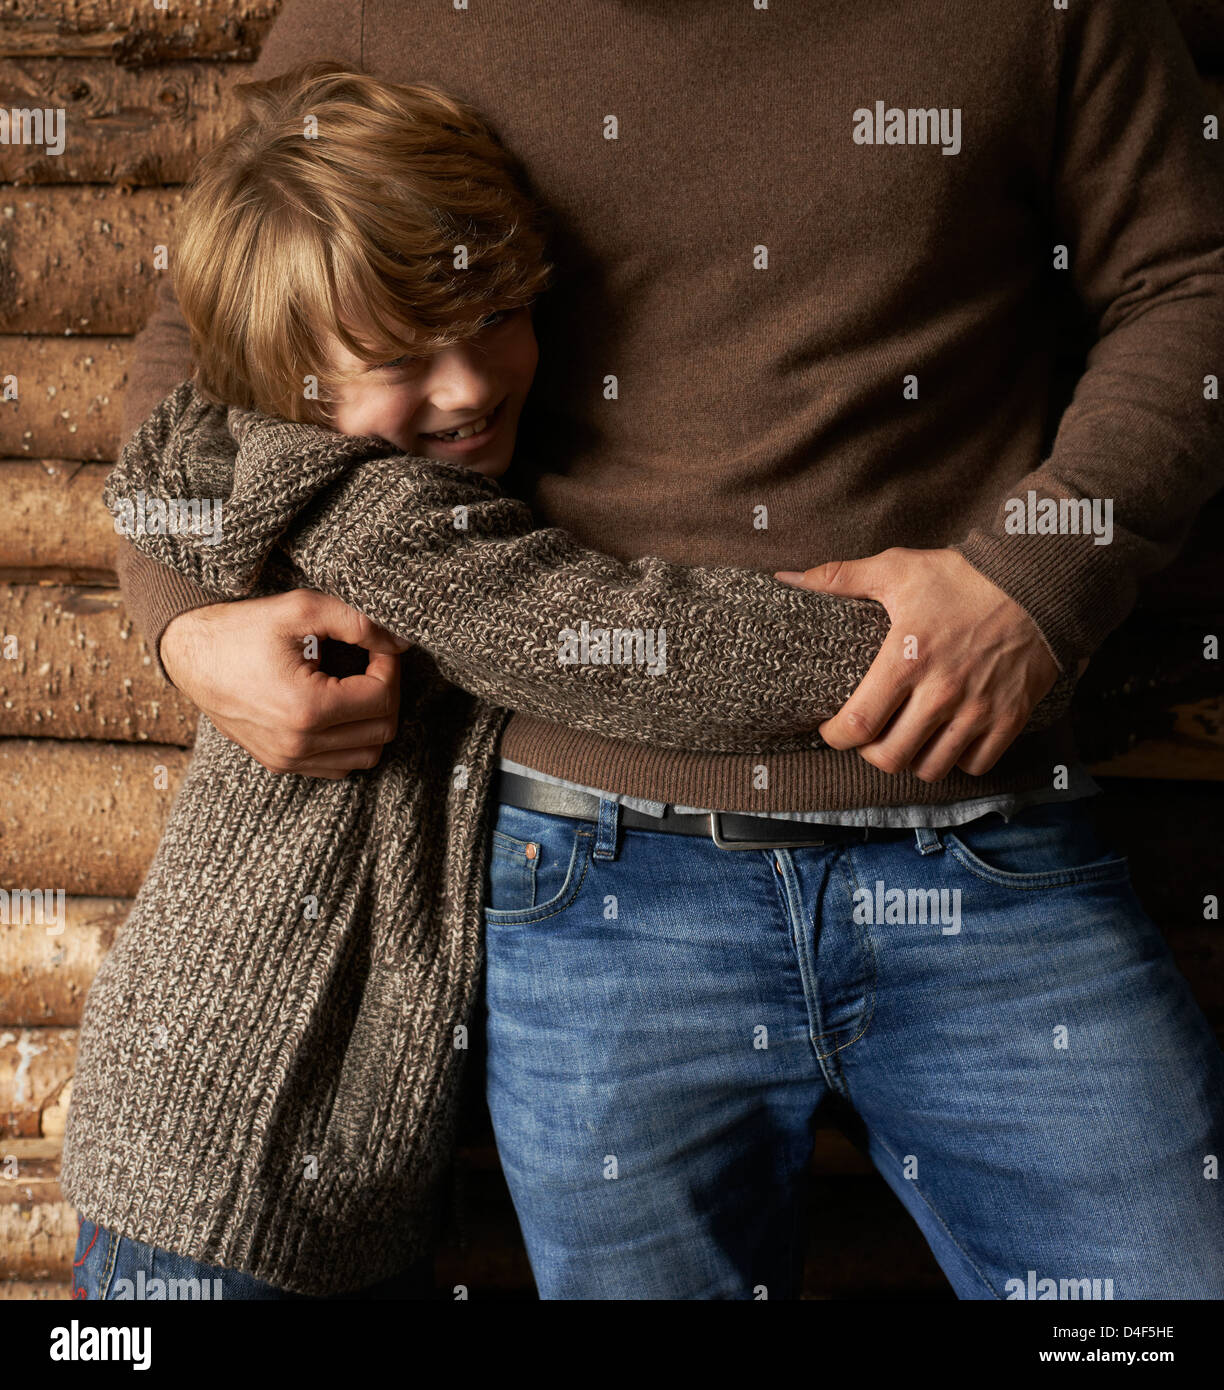 Smiling son hugging father - Stock Image